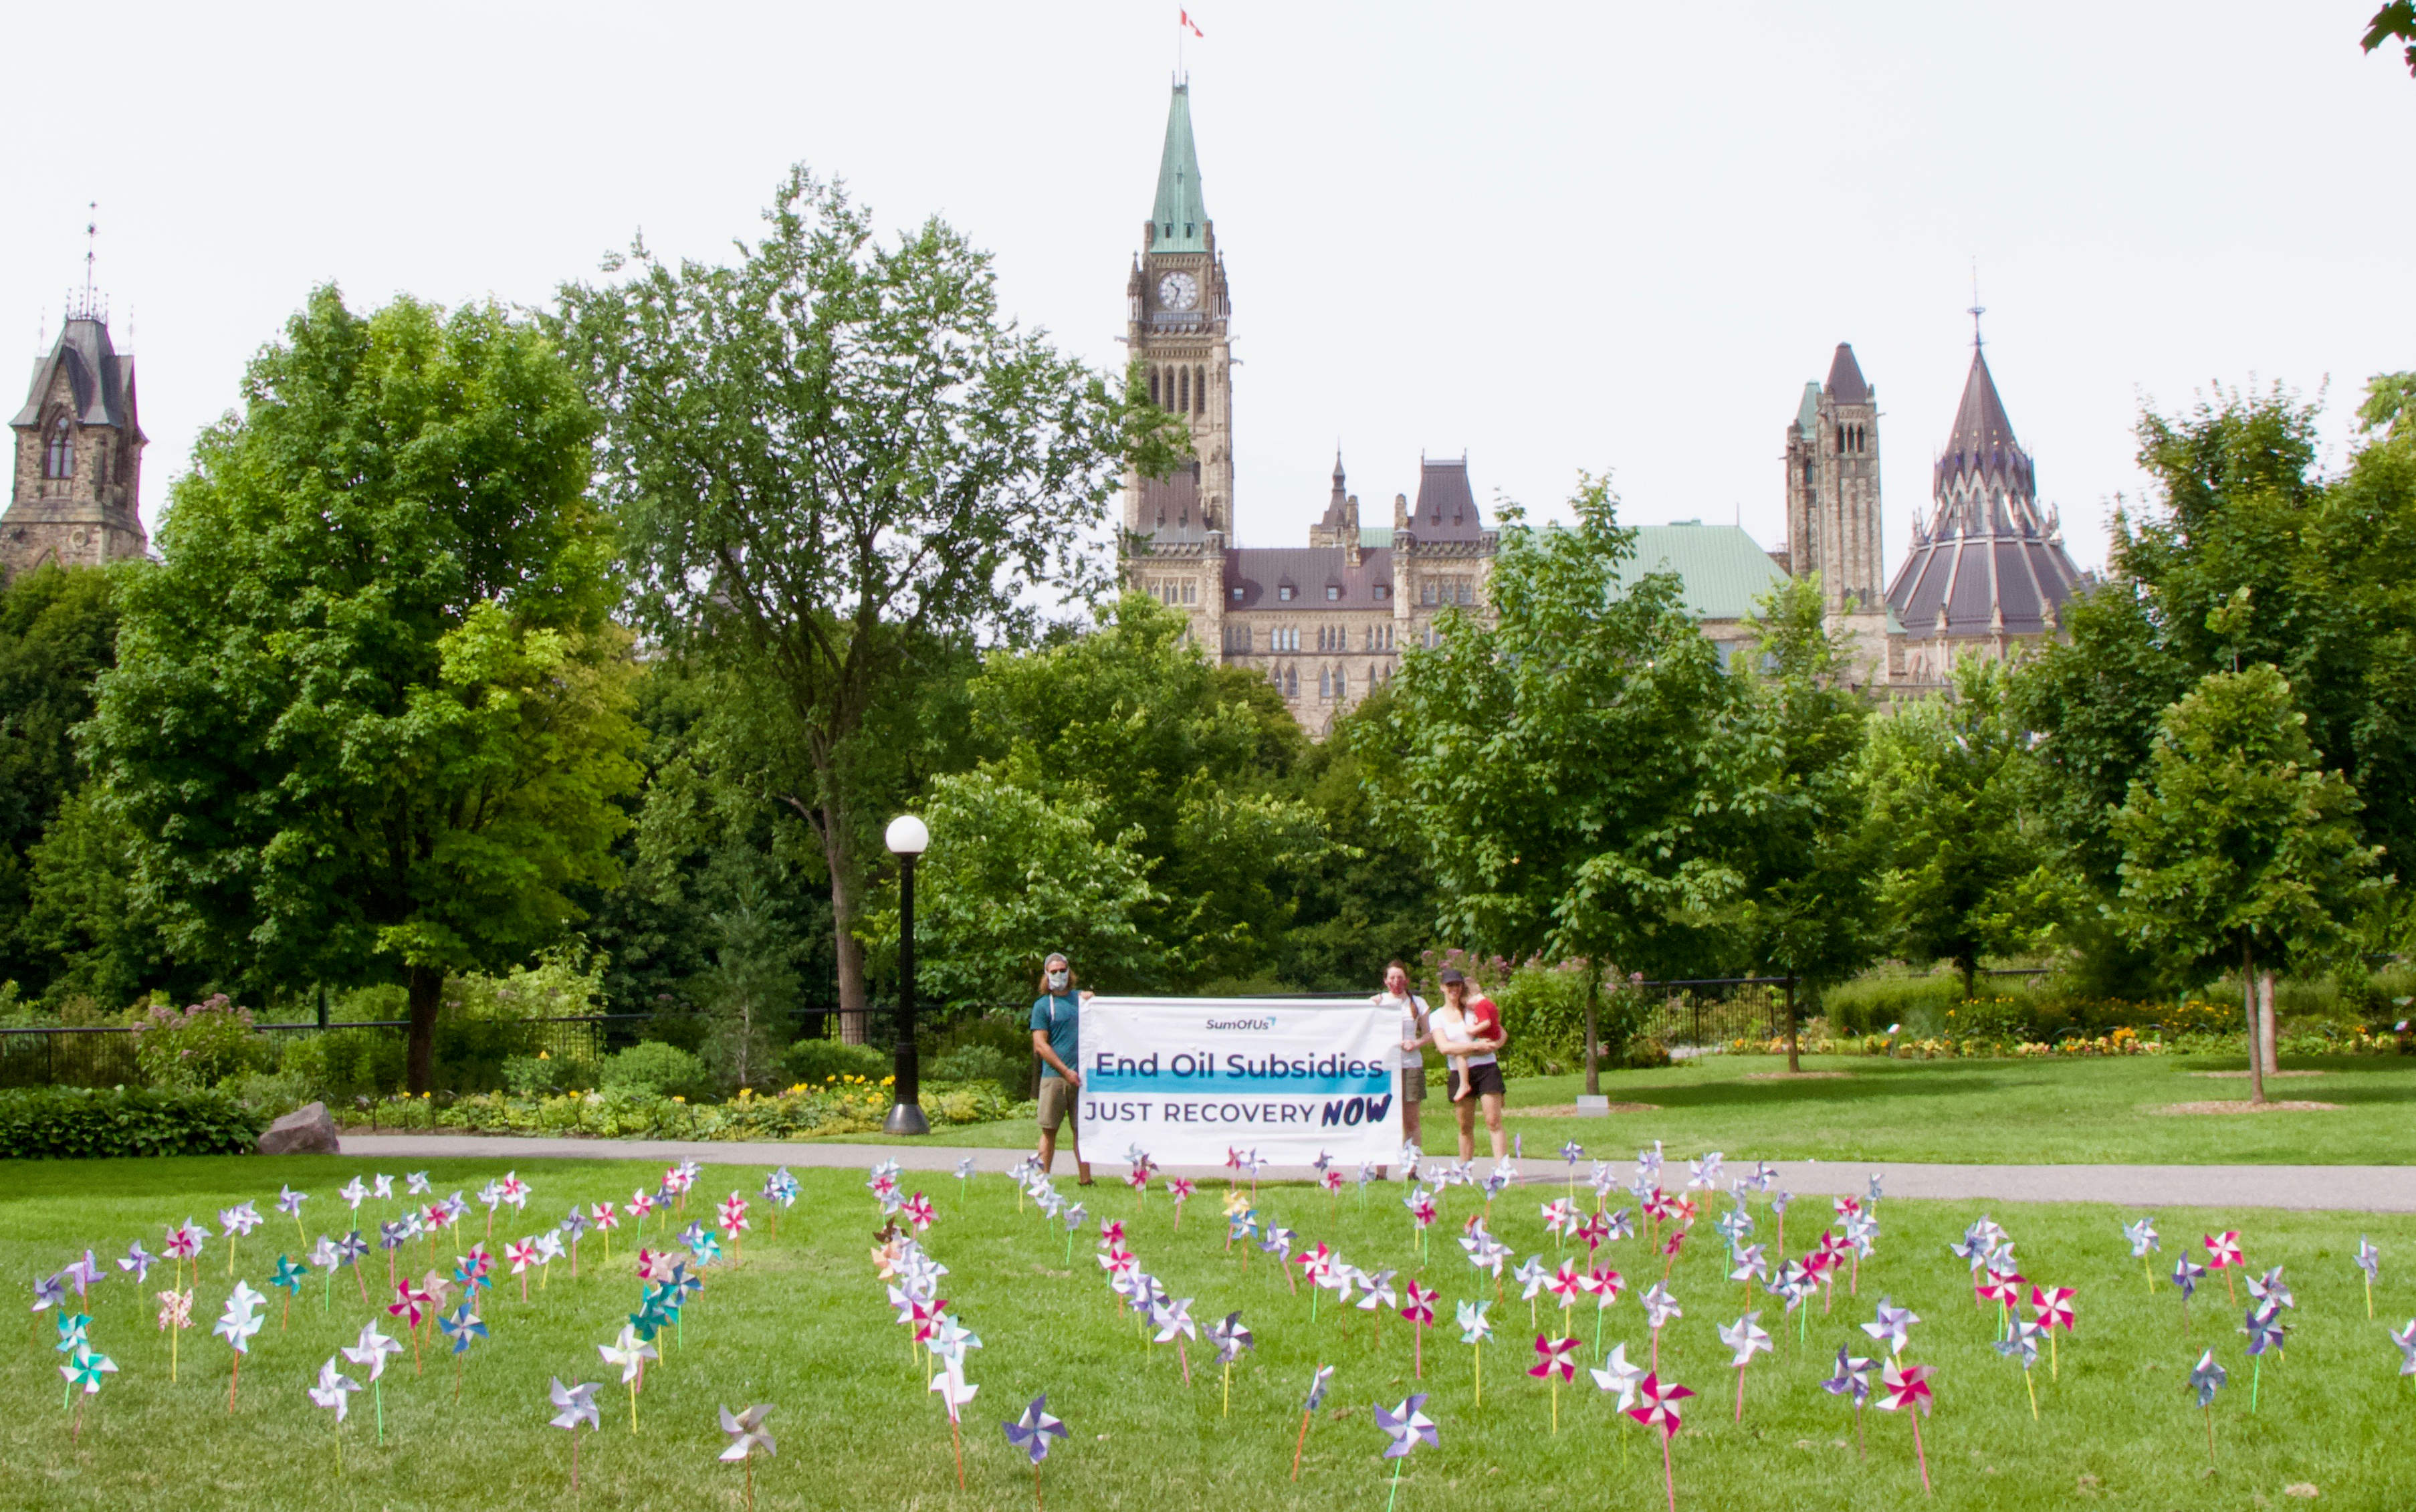 Windmills on the lawn with banner outside Parliament Hill